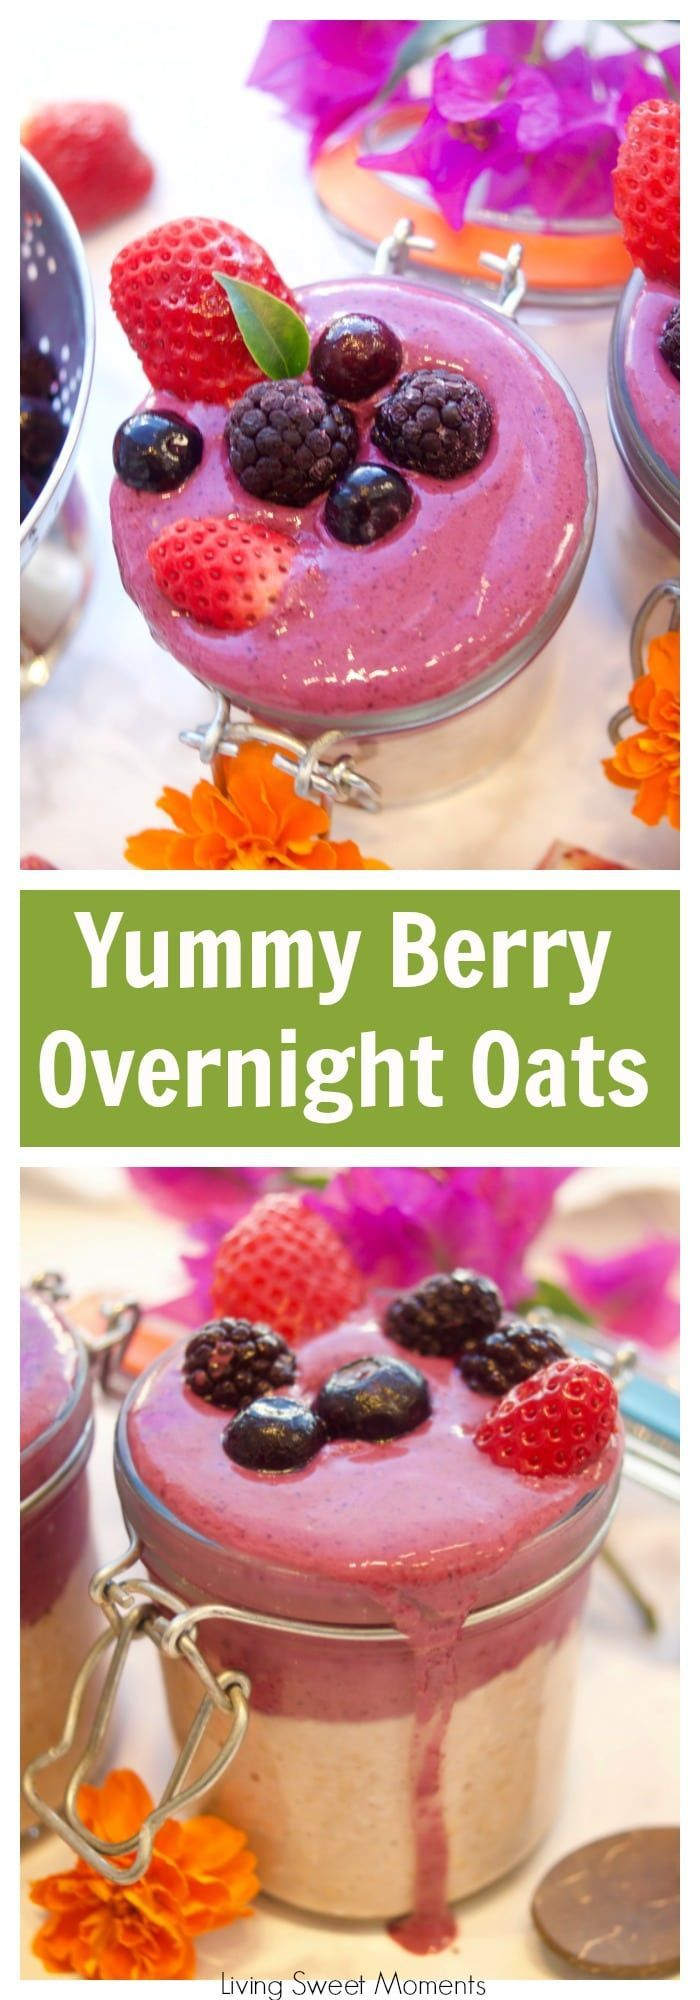 This delicious strawberry overnight oats is topped with a frosty berry smoothie. Enjoy a quick and healthy breakfast idea that will keep you going all morning. More healthy breakfast recipes at livingsweetmoments.com #ad #PerfectPickMeUp  via @Livingsmoments